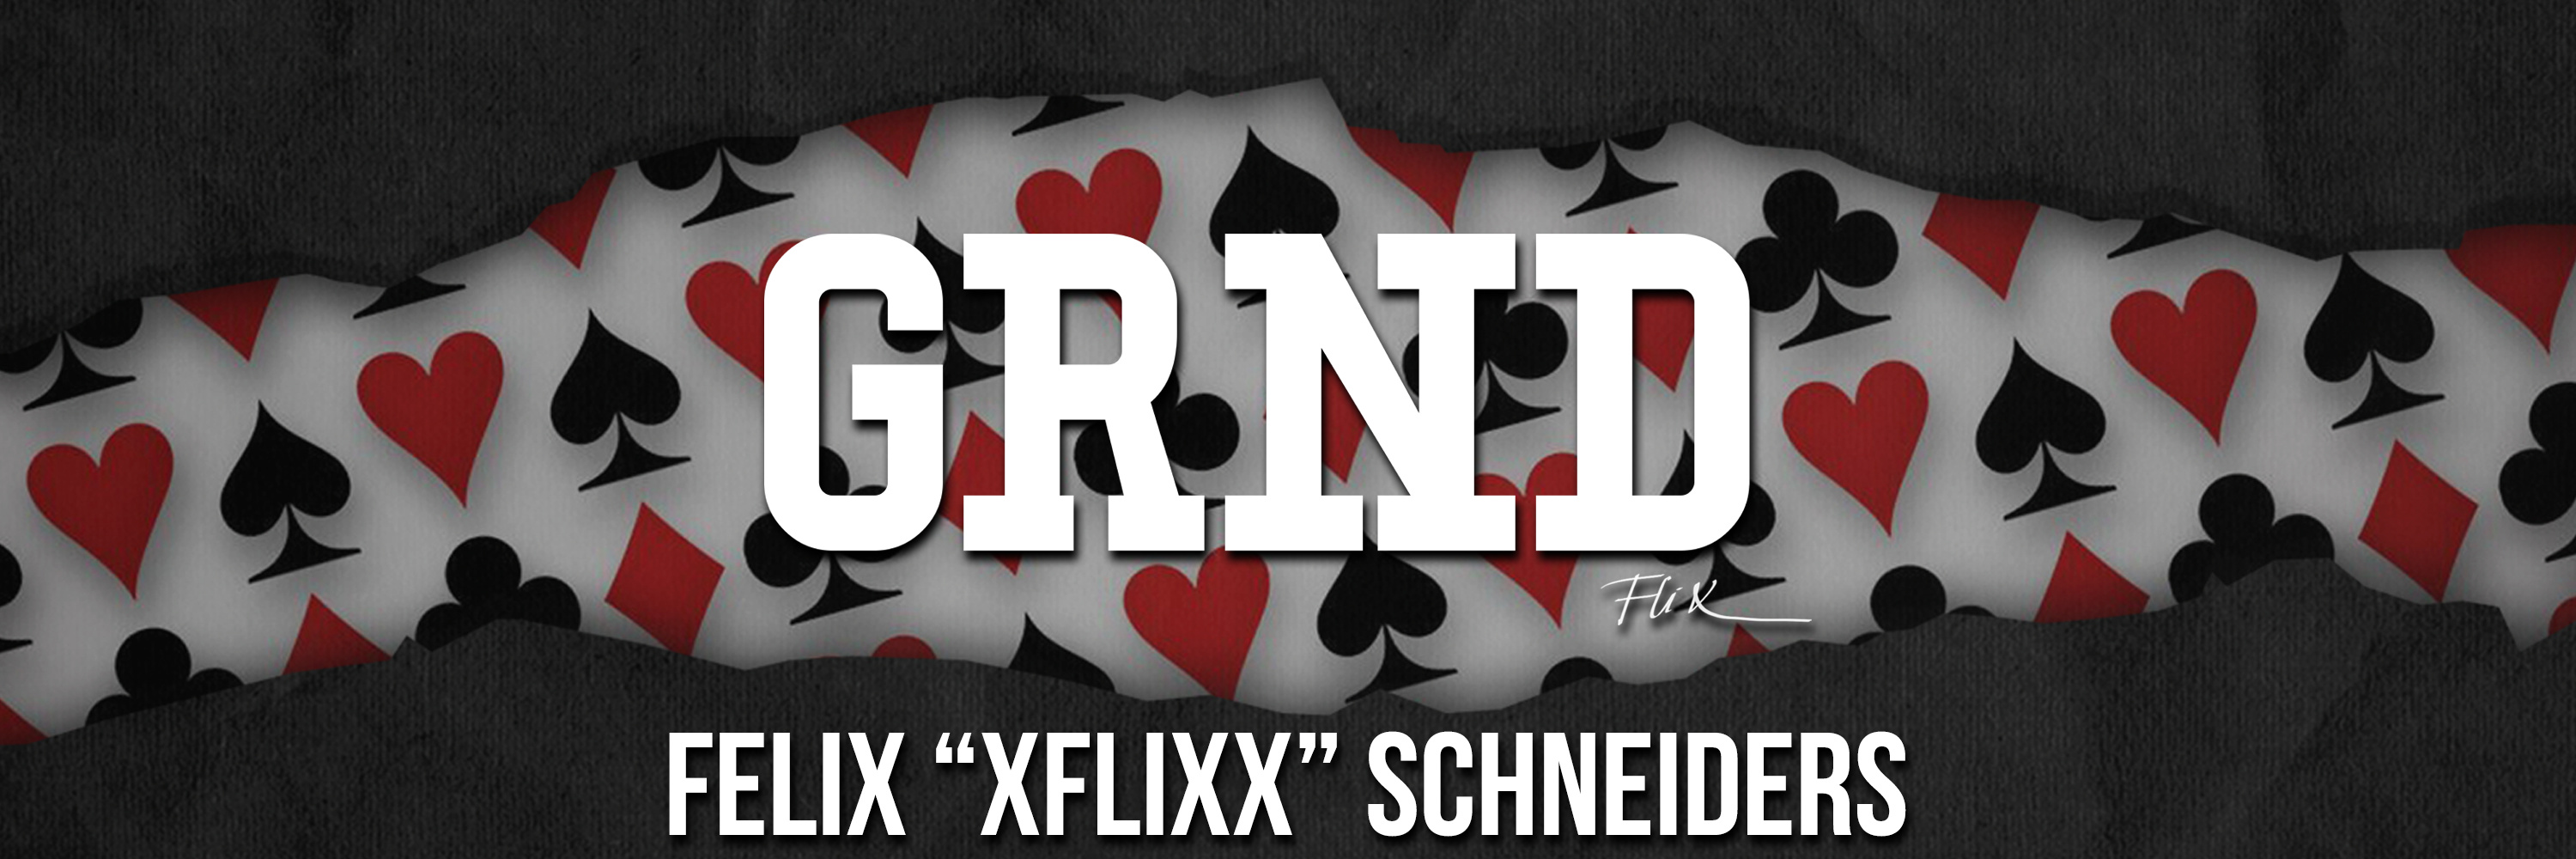 The #grindingitup Shop - Support and represent the #grindingitup Poker community with our official gear!